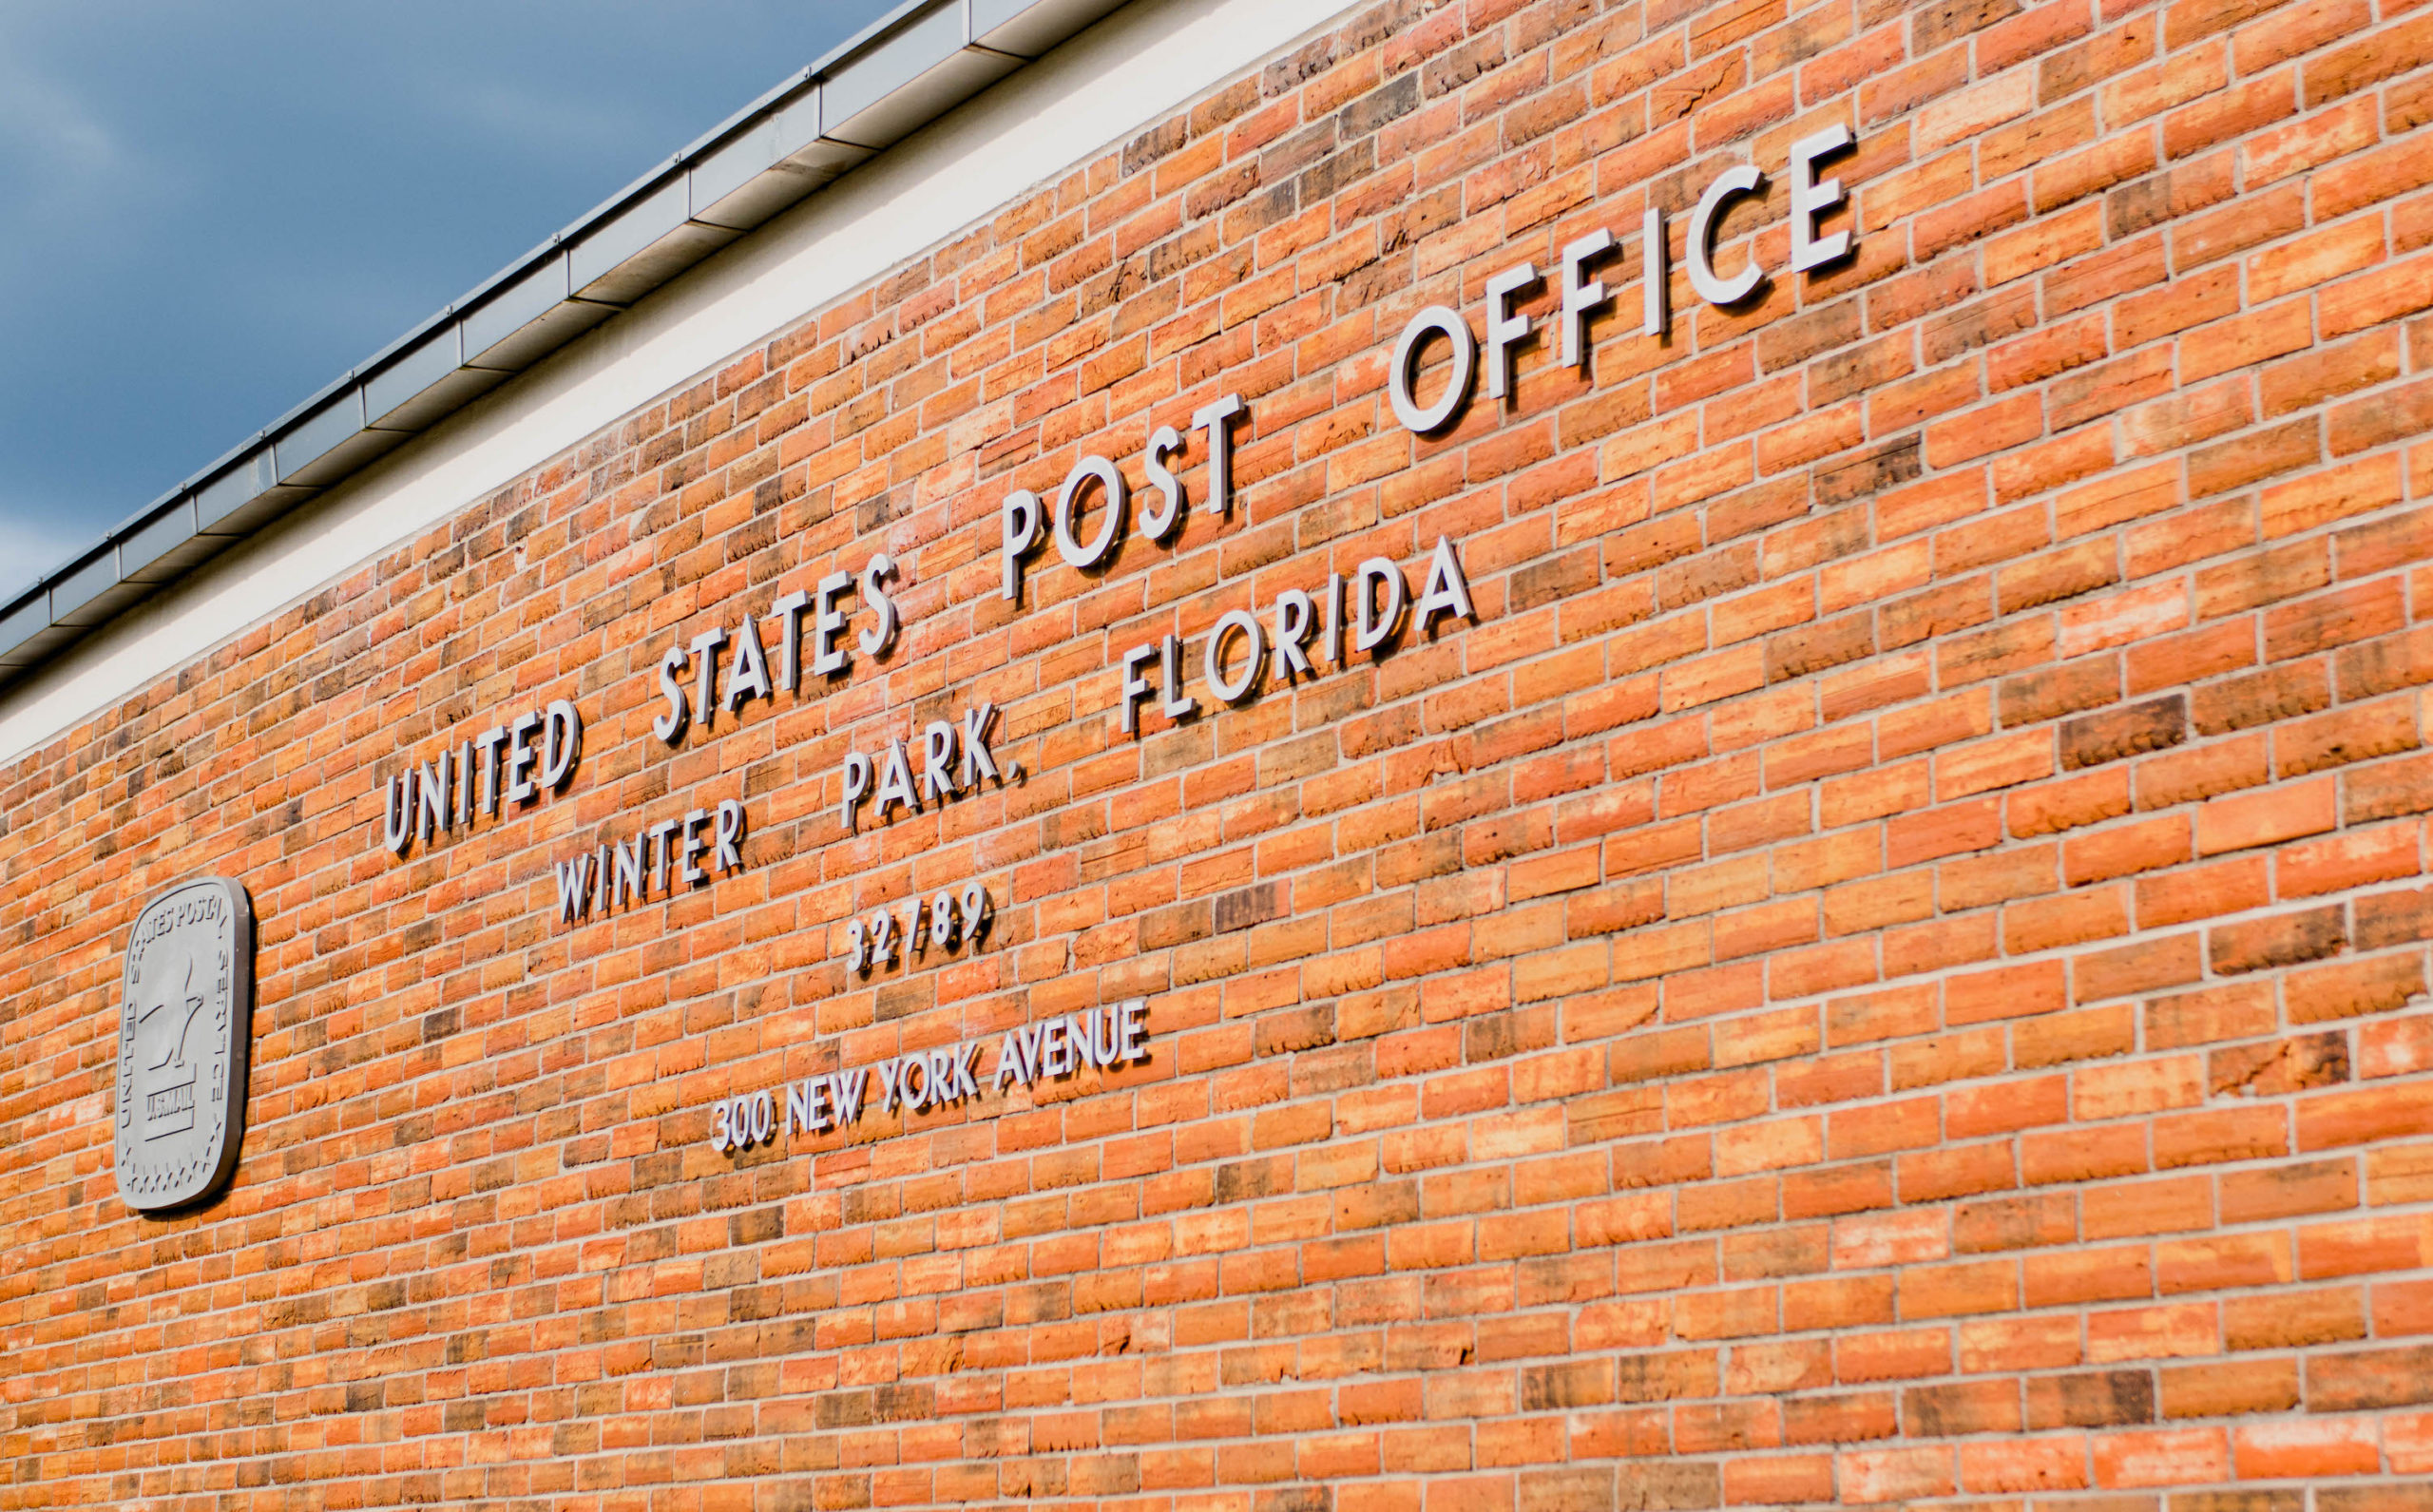 Winter Park Post Office signage on brick wall of building.